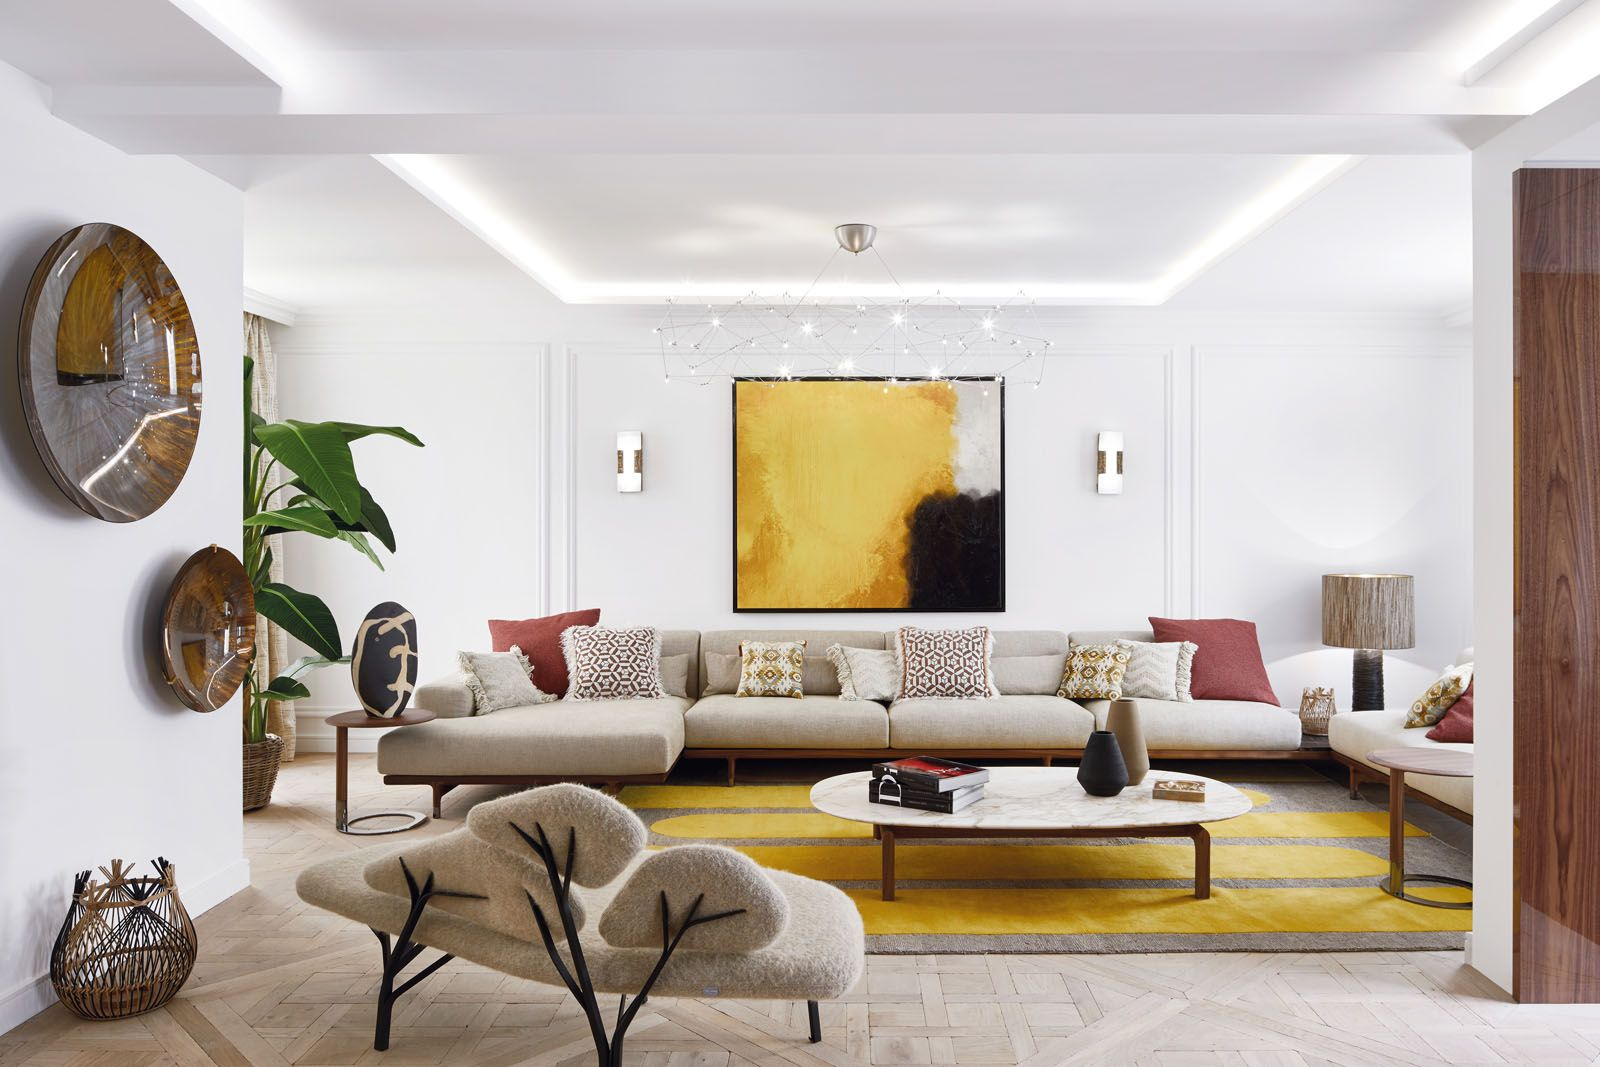 The living room features a sofa set, a coffee table and side tables from Porada, as well as a Gilles Caffier lamp and the Borghèse bench designed by Noé Duchaufour-Lawrance for La Chance